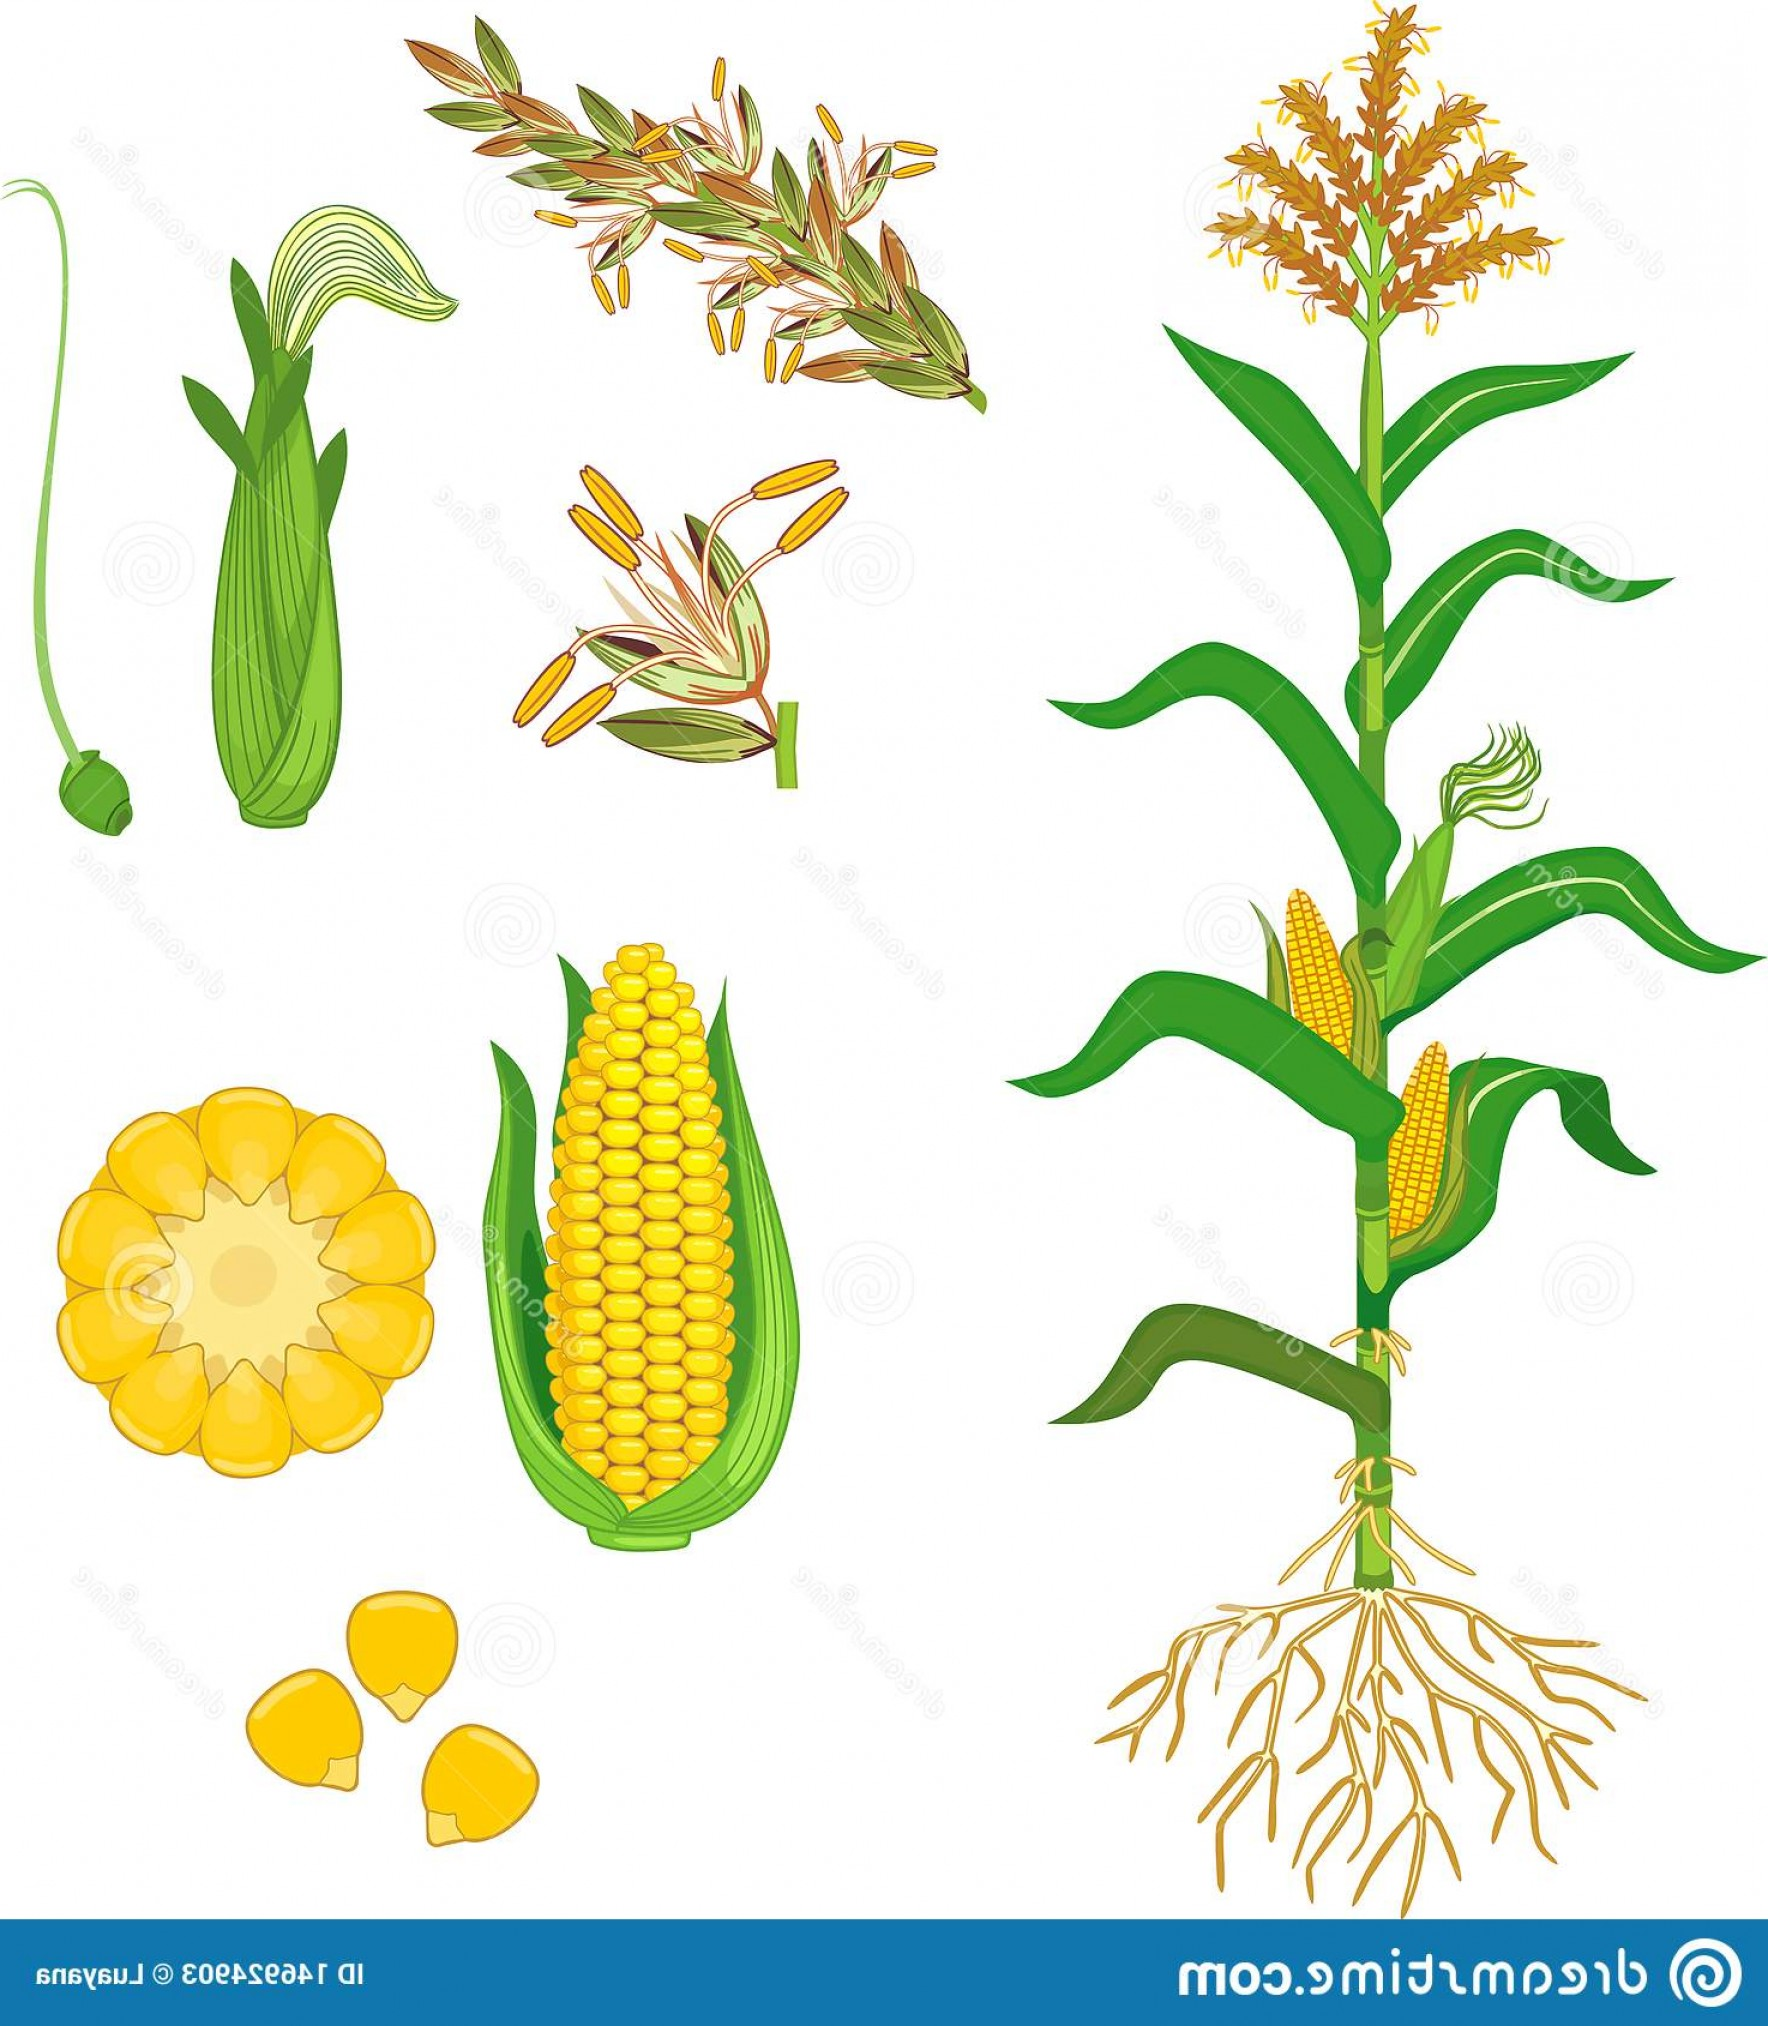 Maize Vector Tree: Parts Plant Morphology Corn Maize Green Leaves Root System Fruits Flowers Isolated White Background Image